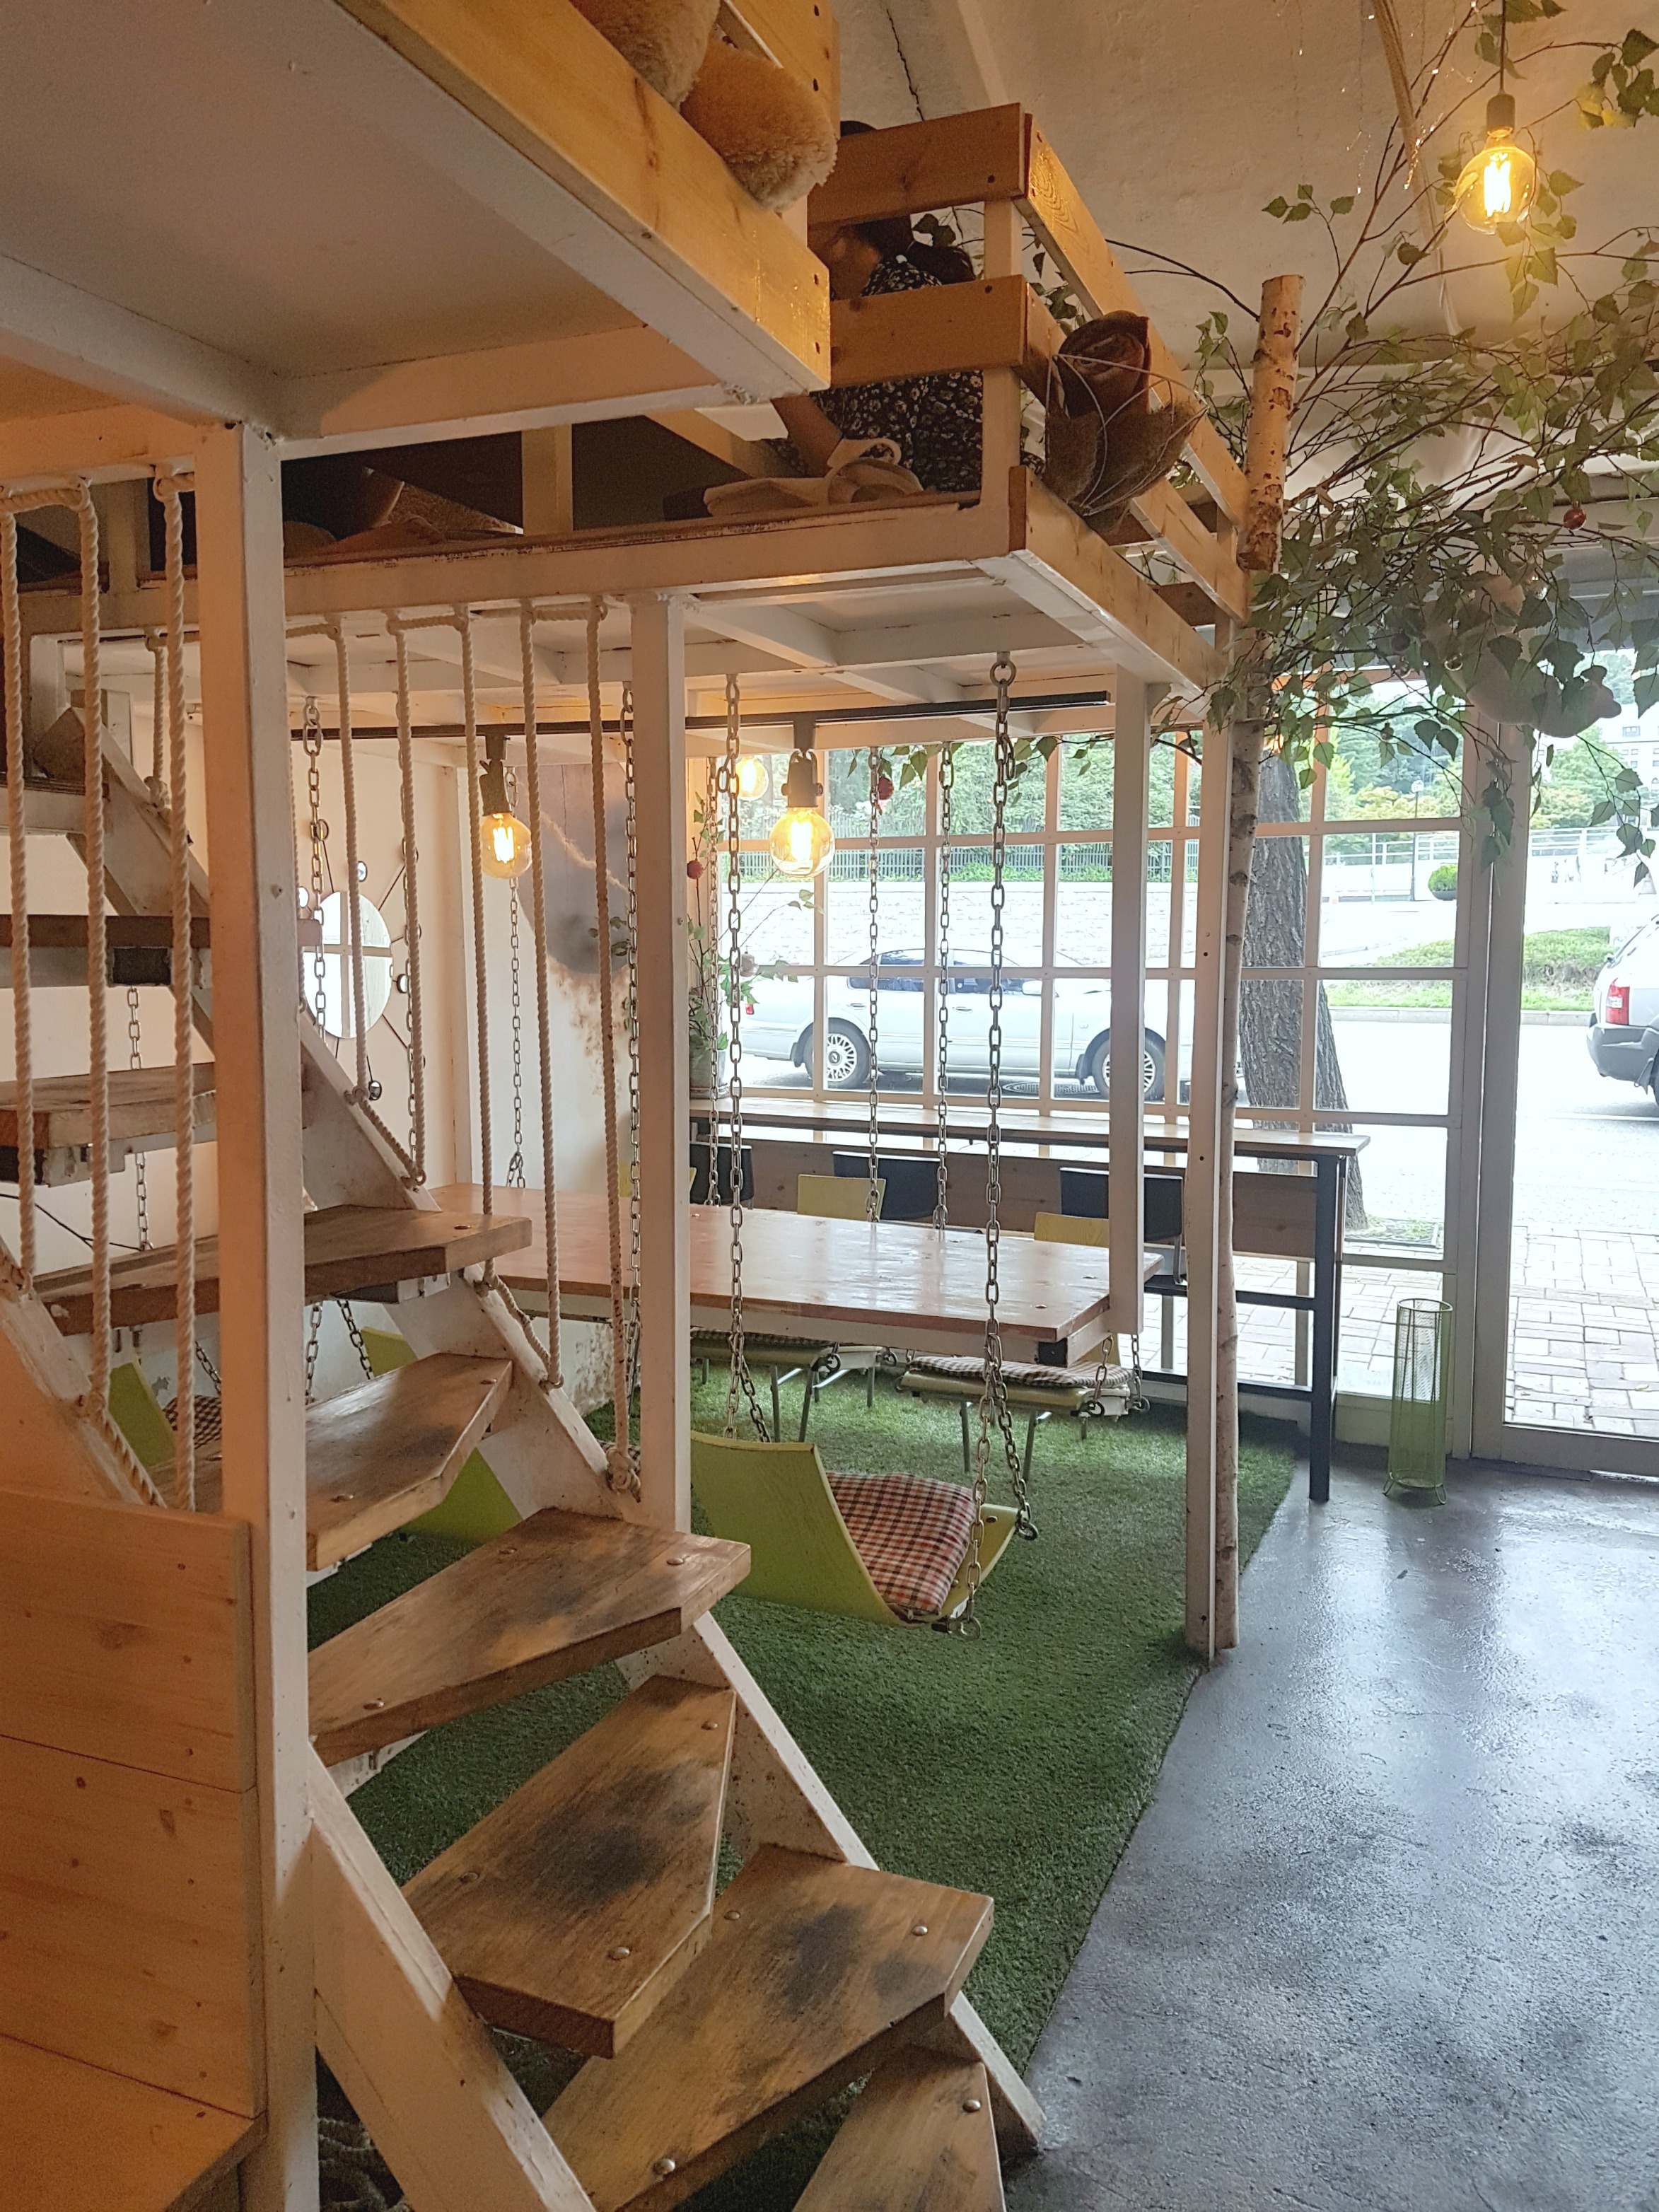 I think I have already found my favorite café in Seoul. I mean who would not want to drink their coffee in a swing?